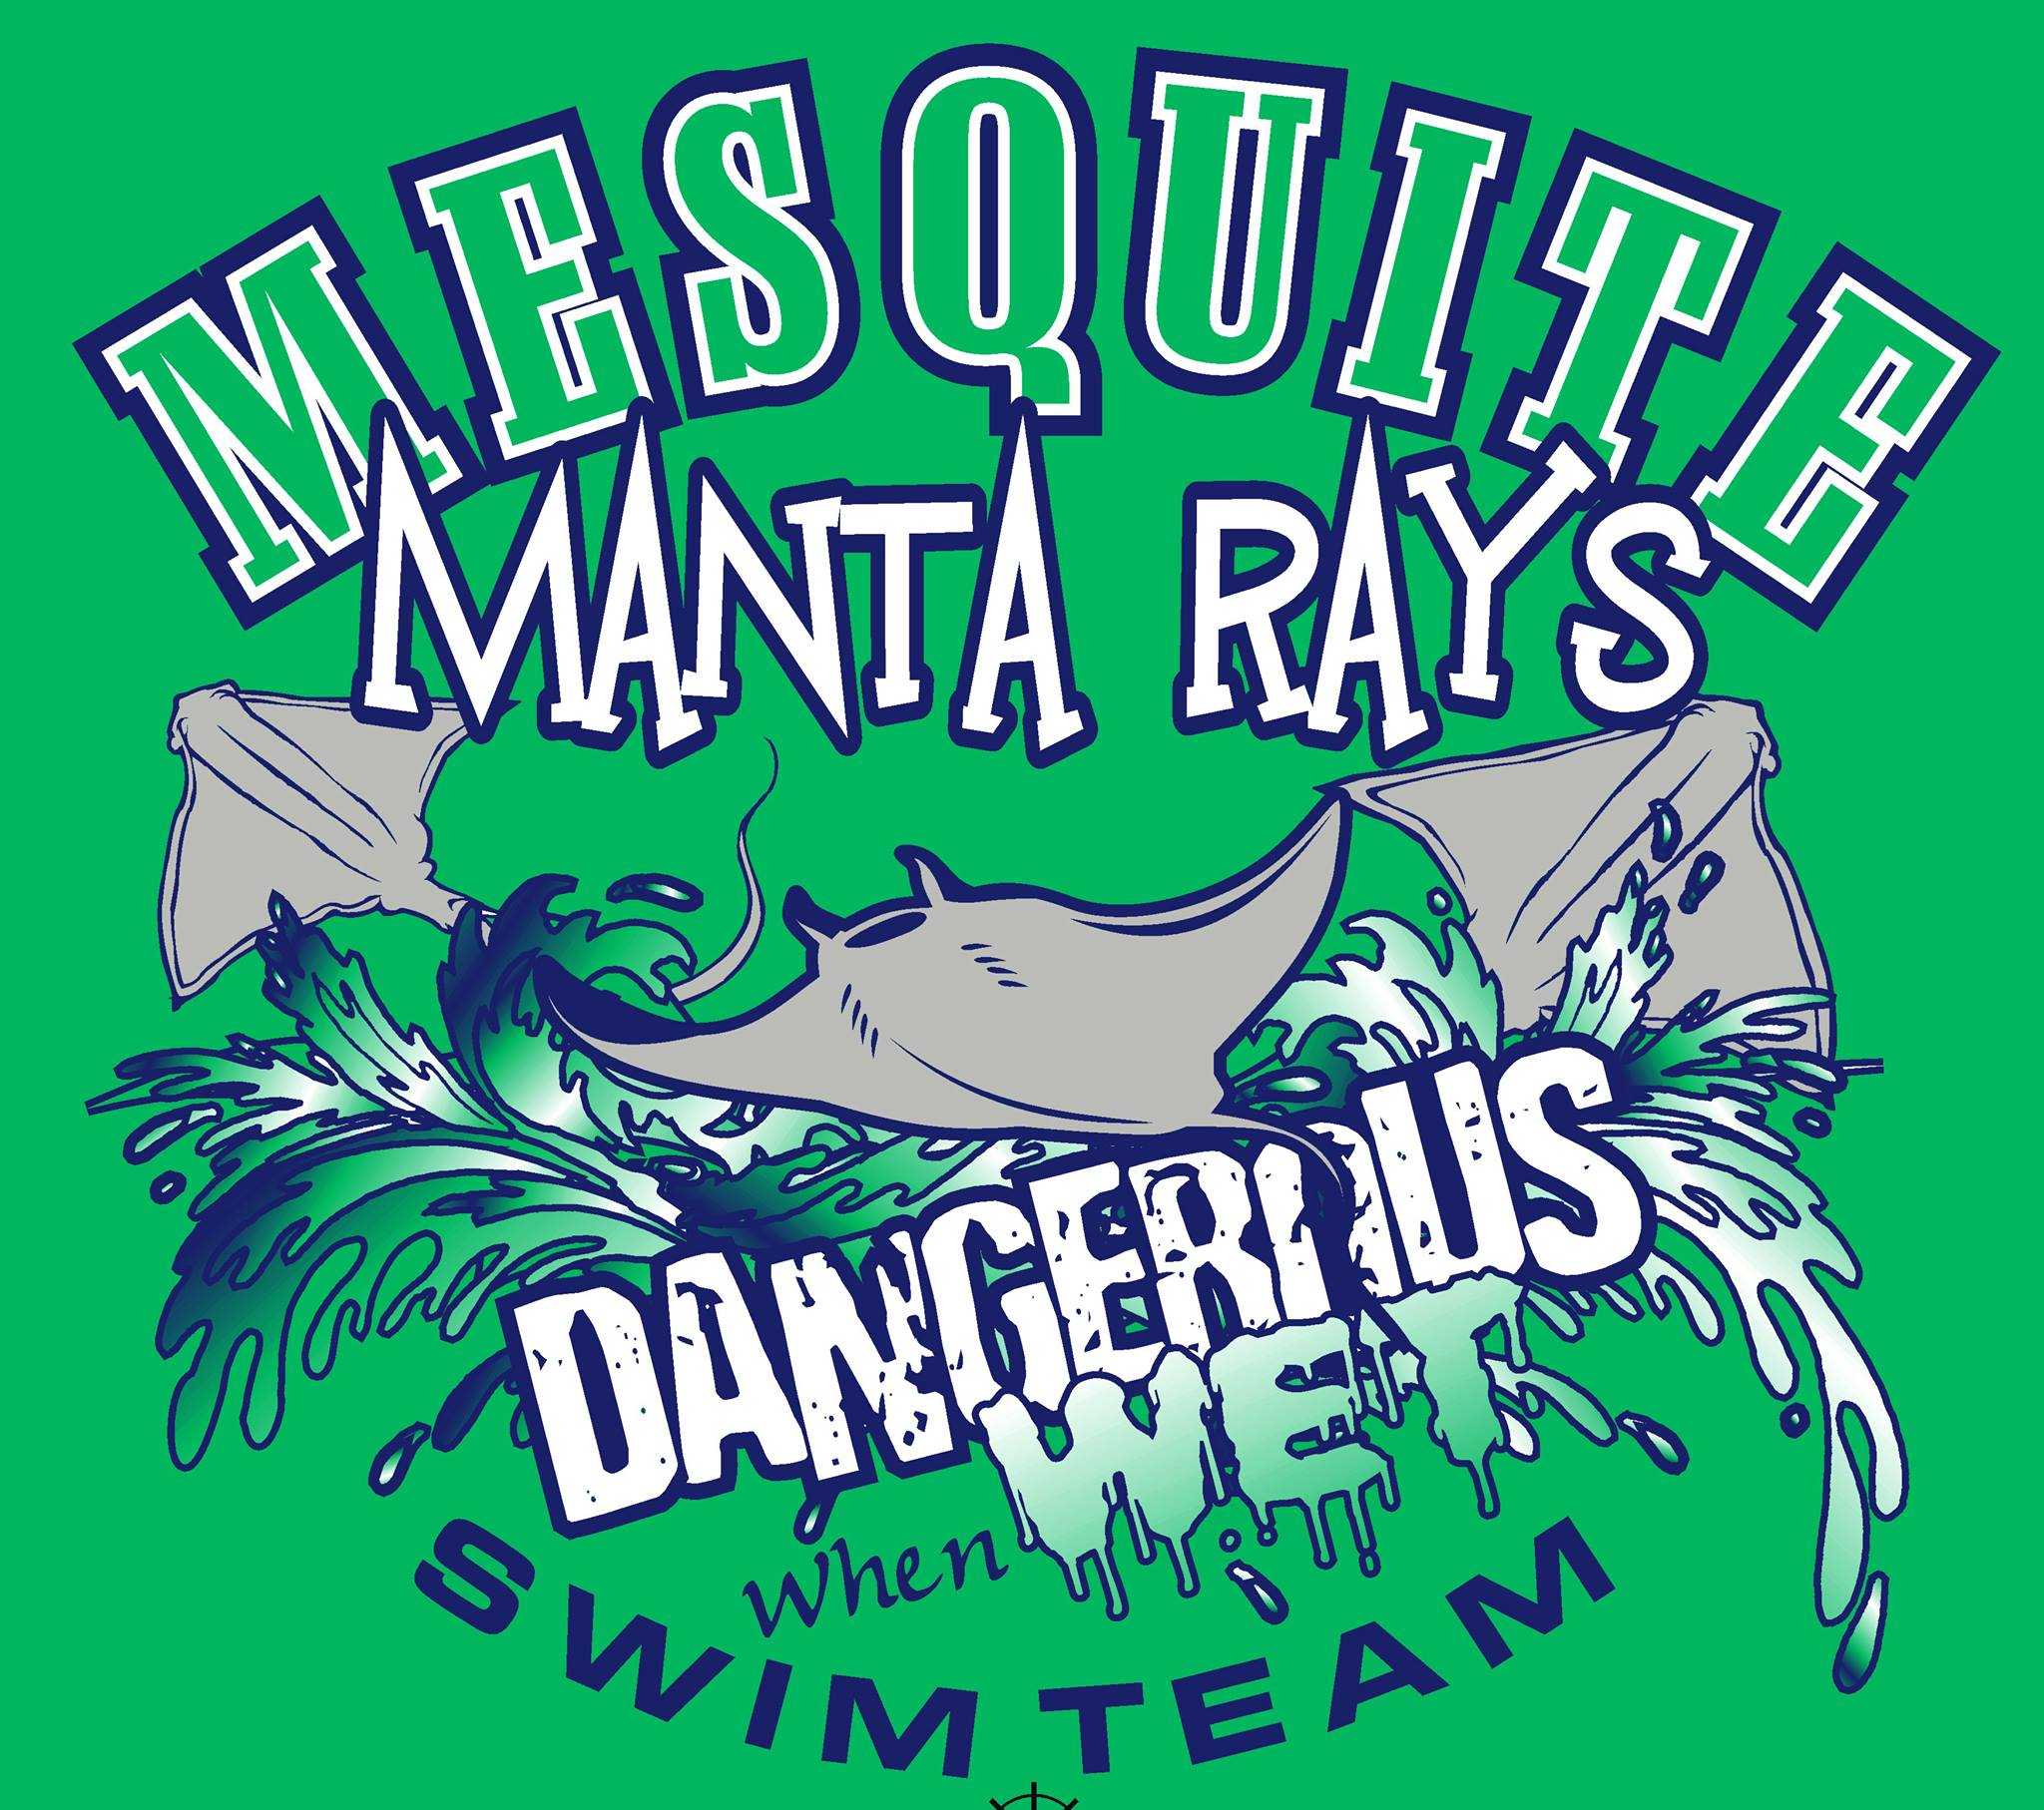 Manta Rays swim for several wins